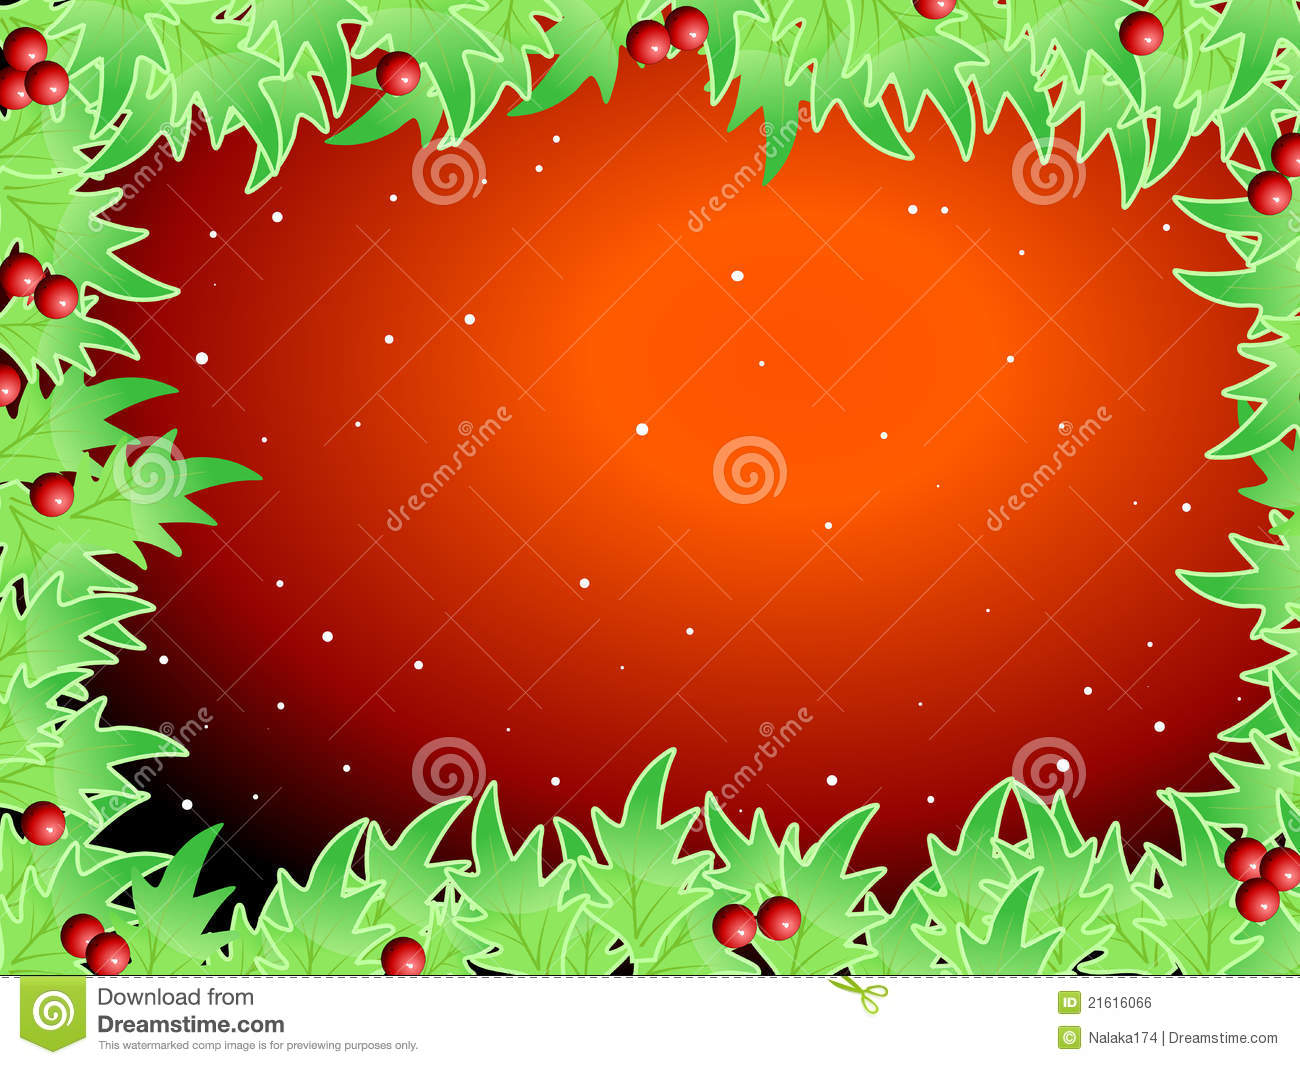 royalty free stock image  blank template for christmas greetings card  image  21616066